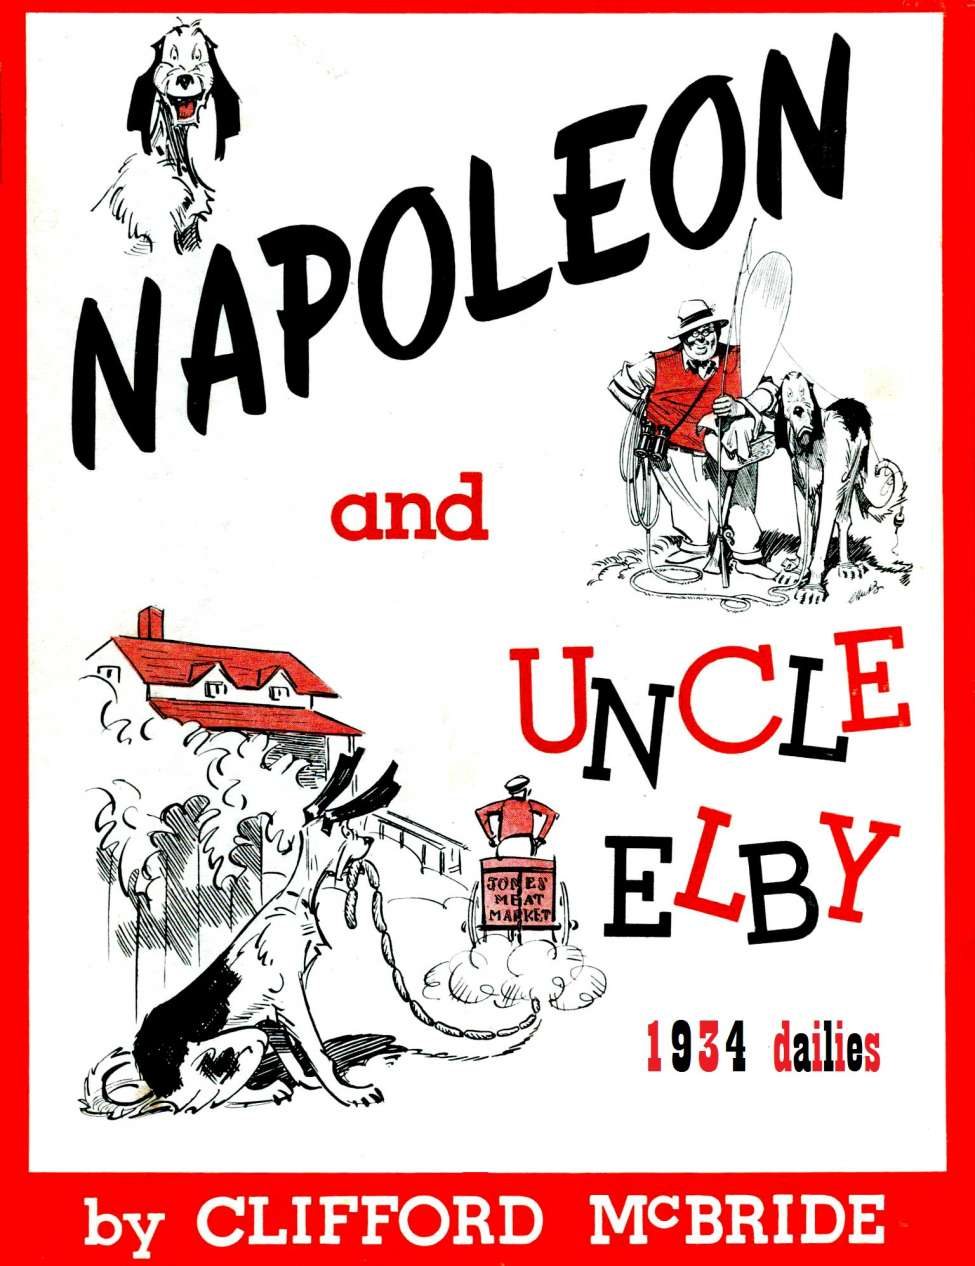 Comic Book Cover For Napoleon 1934 dailies